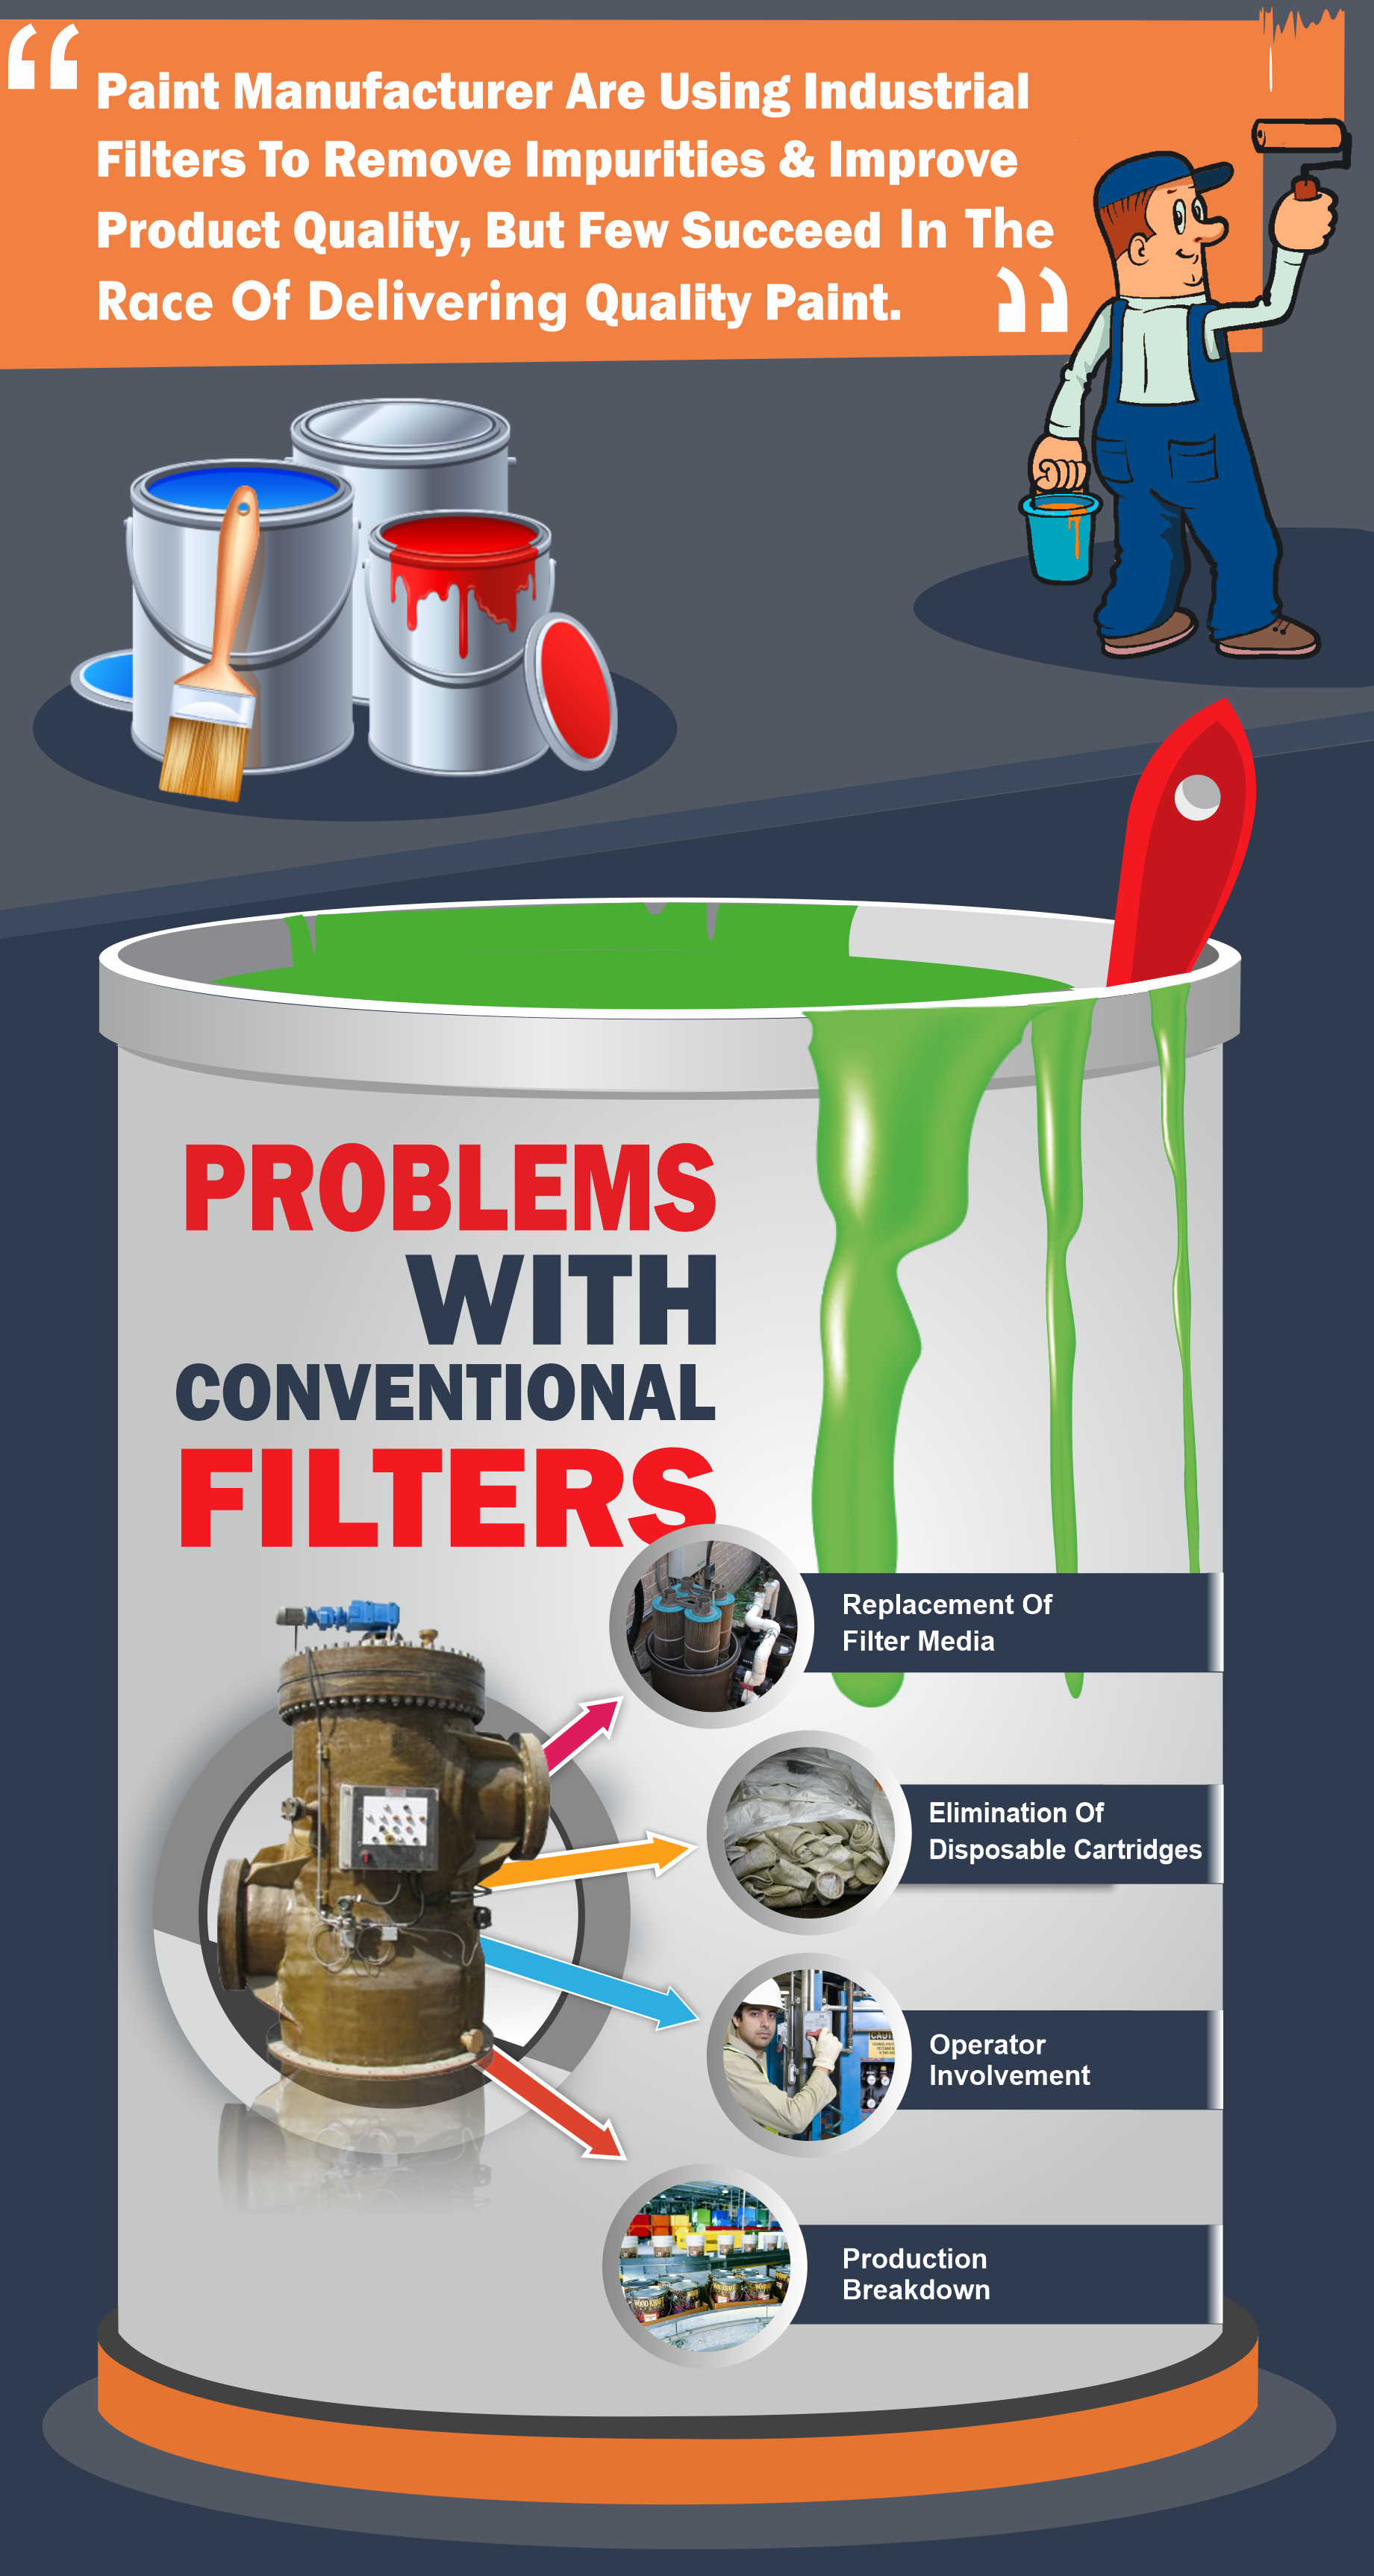 Problems With Conventional Filters